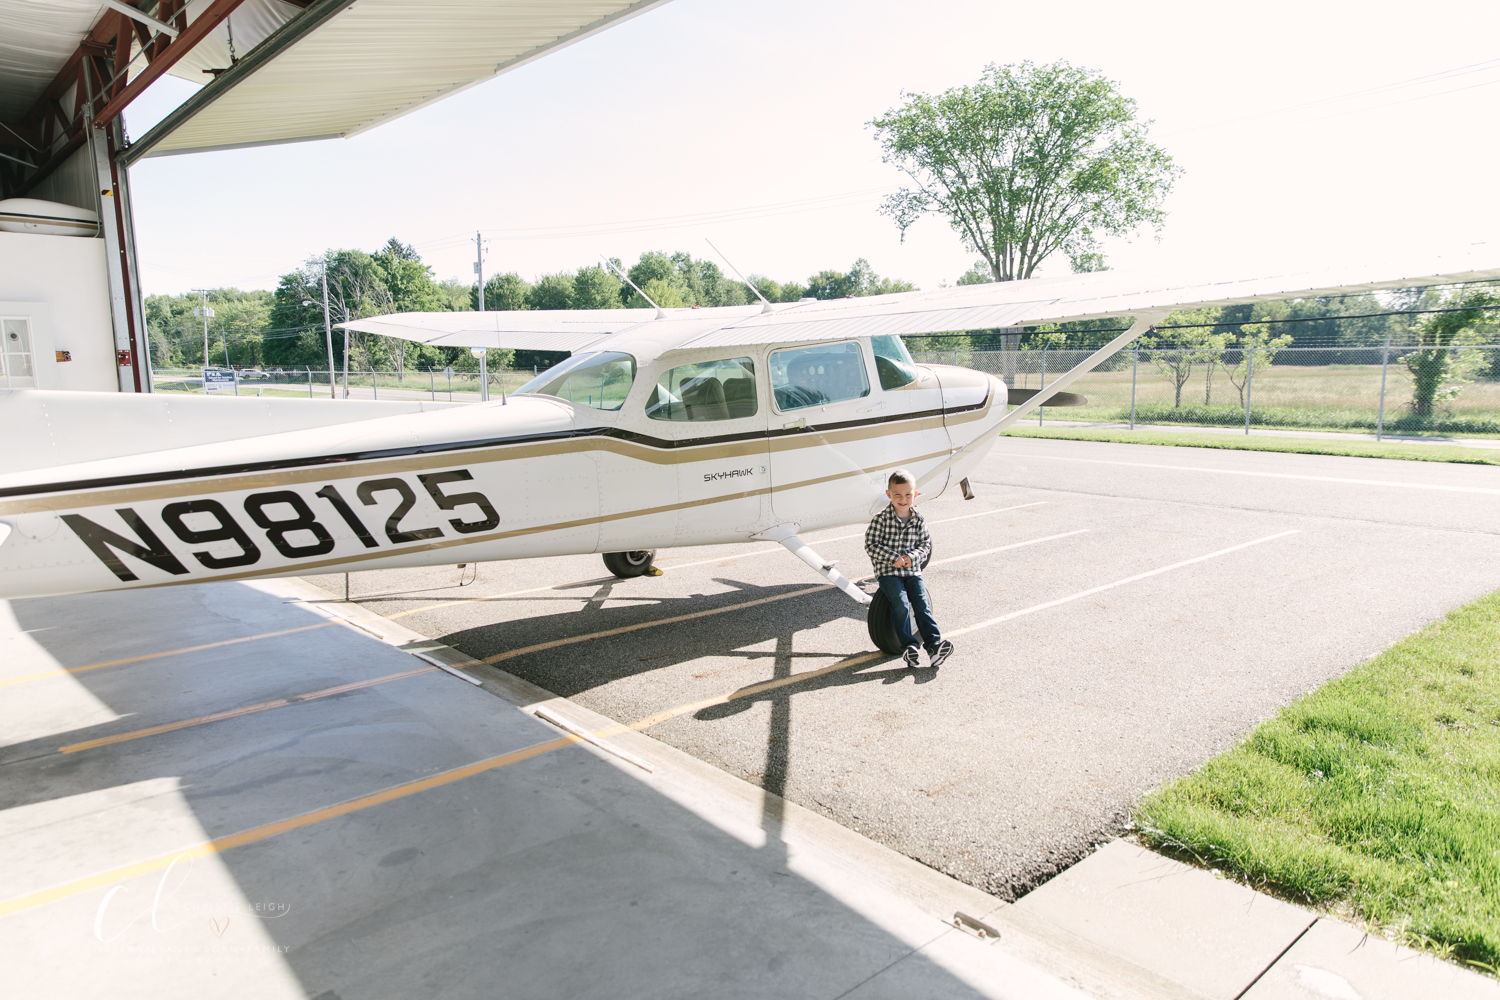 Aviation_Themed_Fourth_Birthday_at_Youngstown_Airport_Hanger_Vienna_OH_by_Child_and_Family_Photographer_Christie_Leigh_Photo-7.JPG